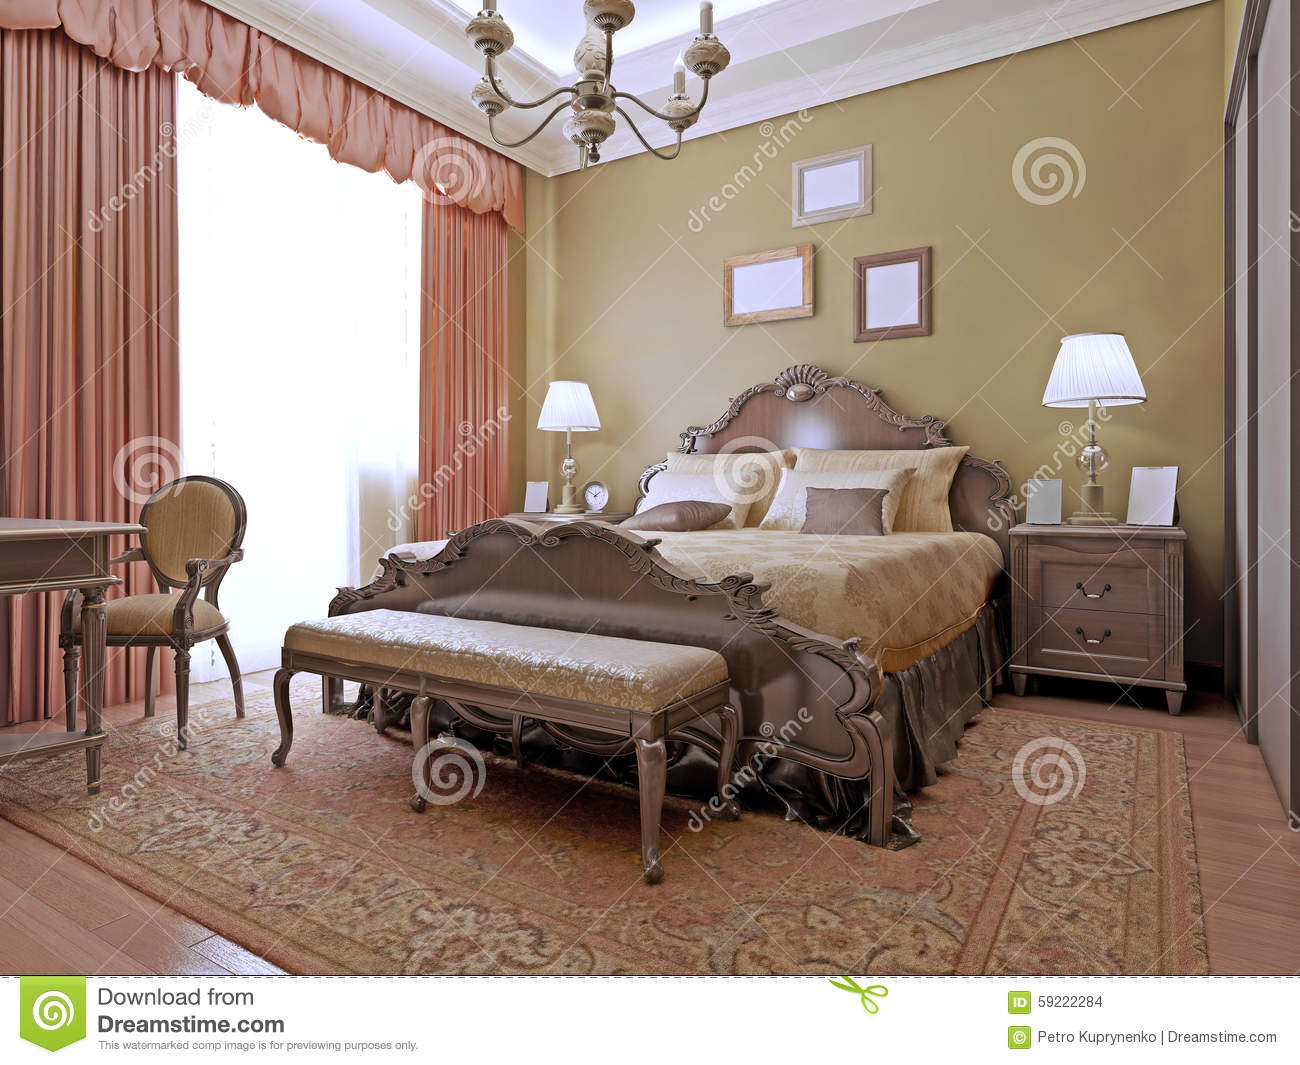 English style bedrooms - Expensive Bedroom Art Deco Style Stock Images